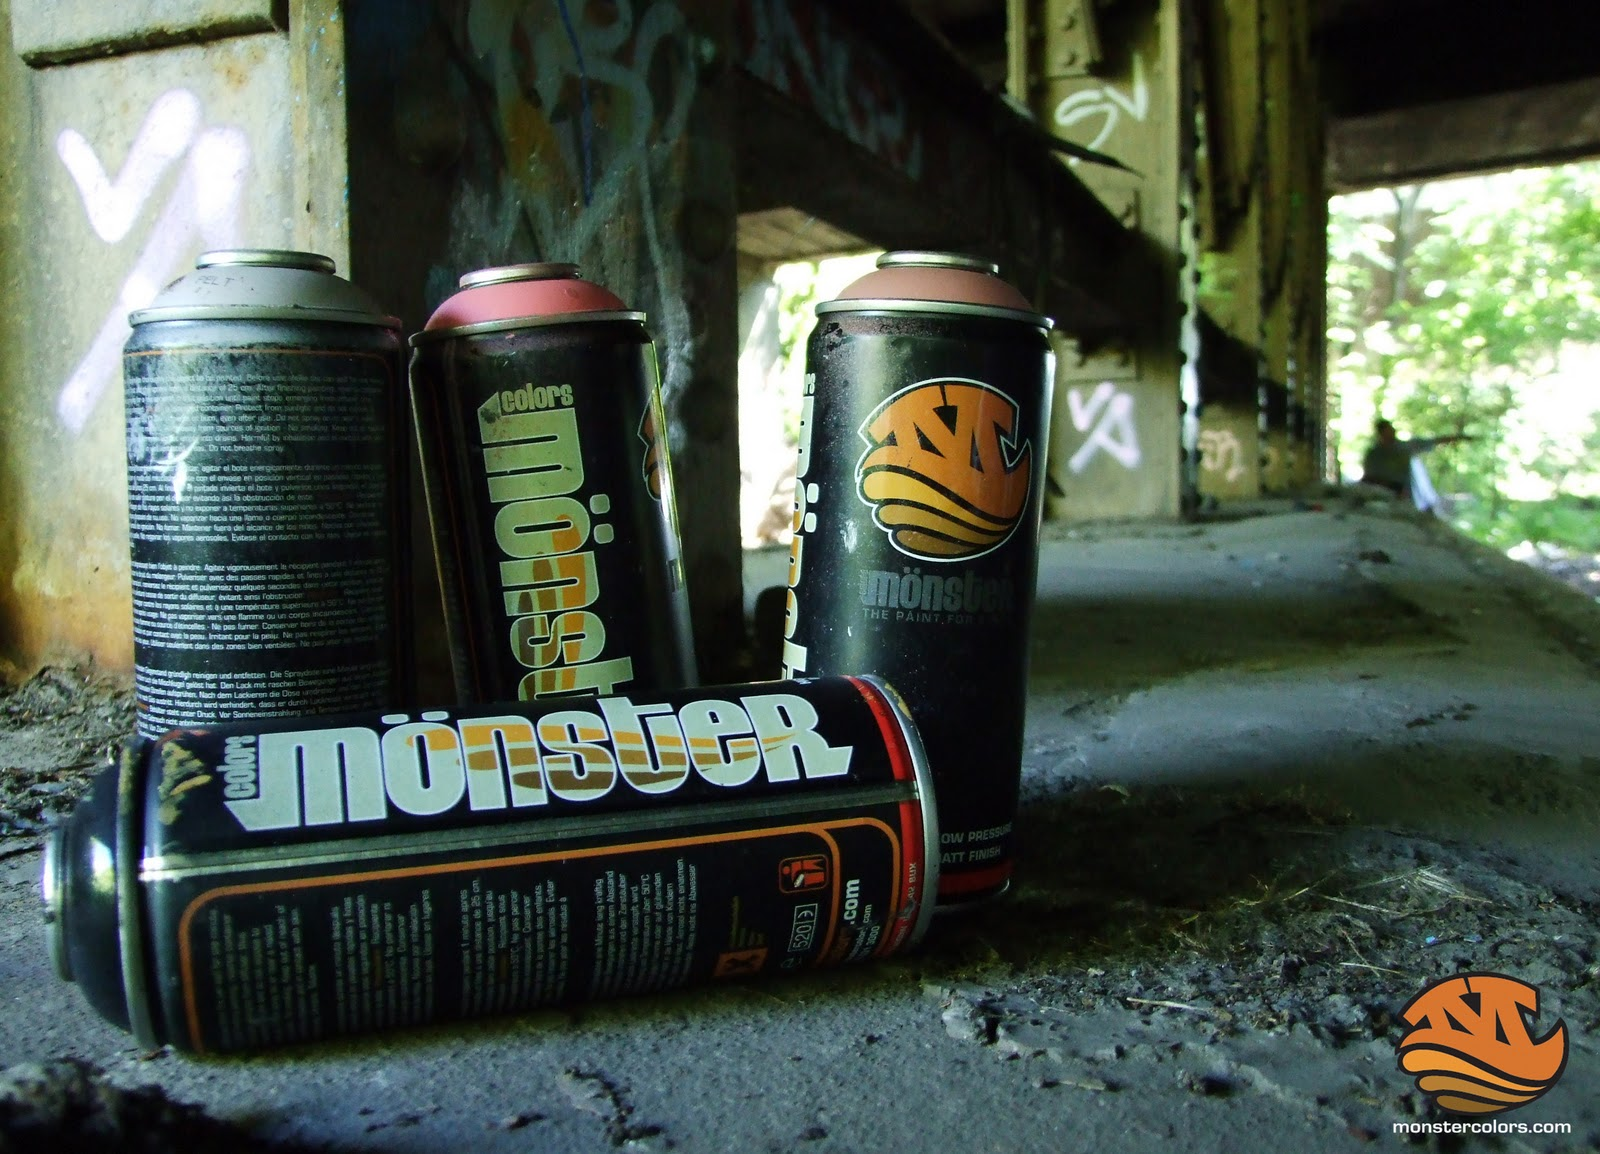 Monster Colors Graffiti Blog Spray Paint Cans Street Art Tags Taggging Pen Graff Blog Best